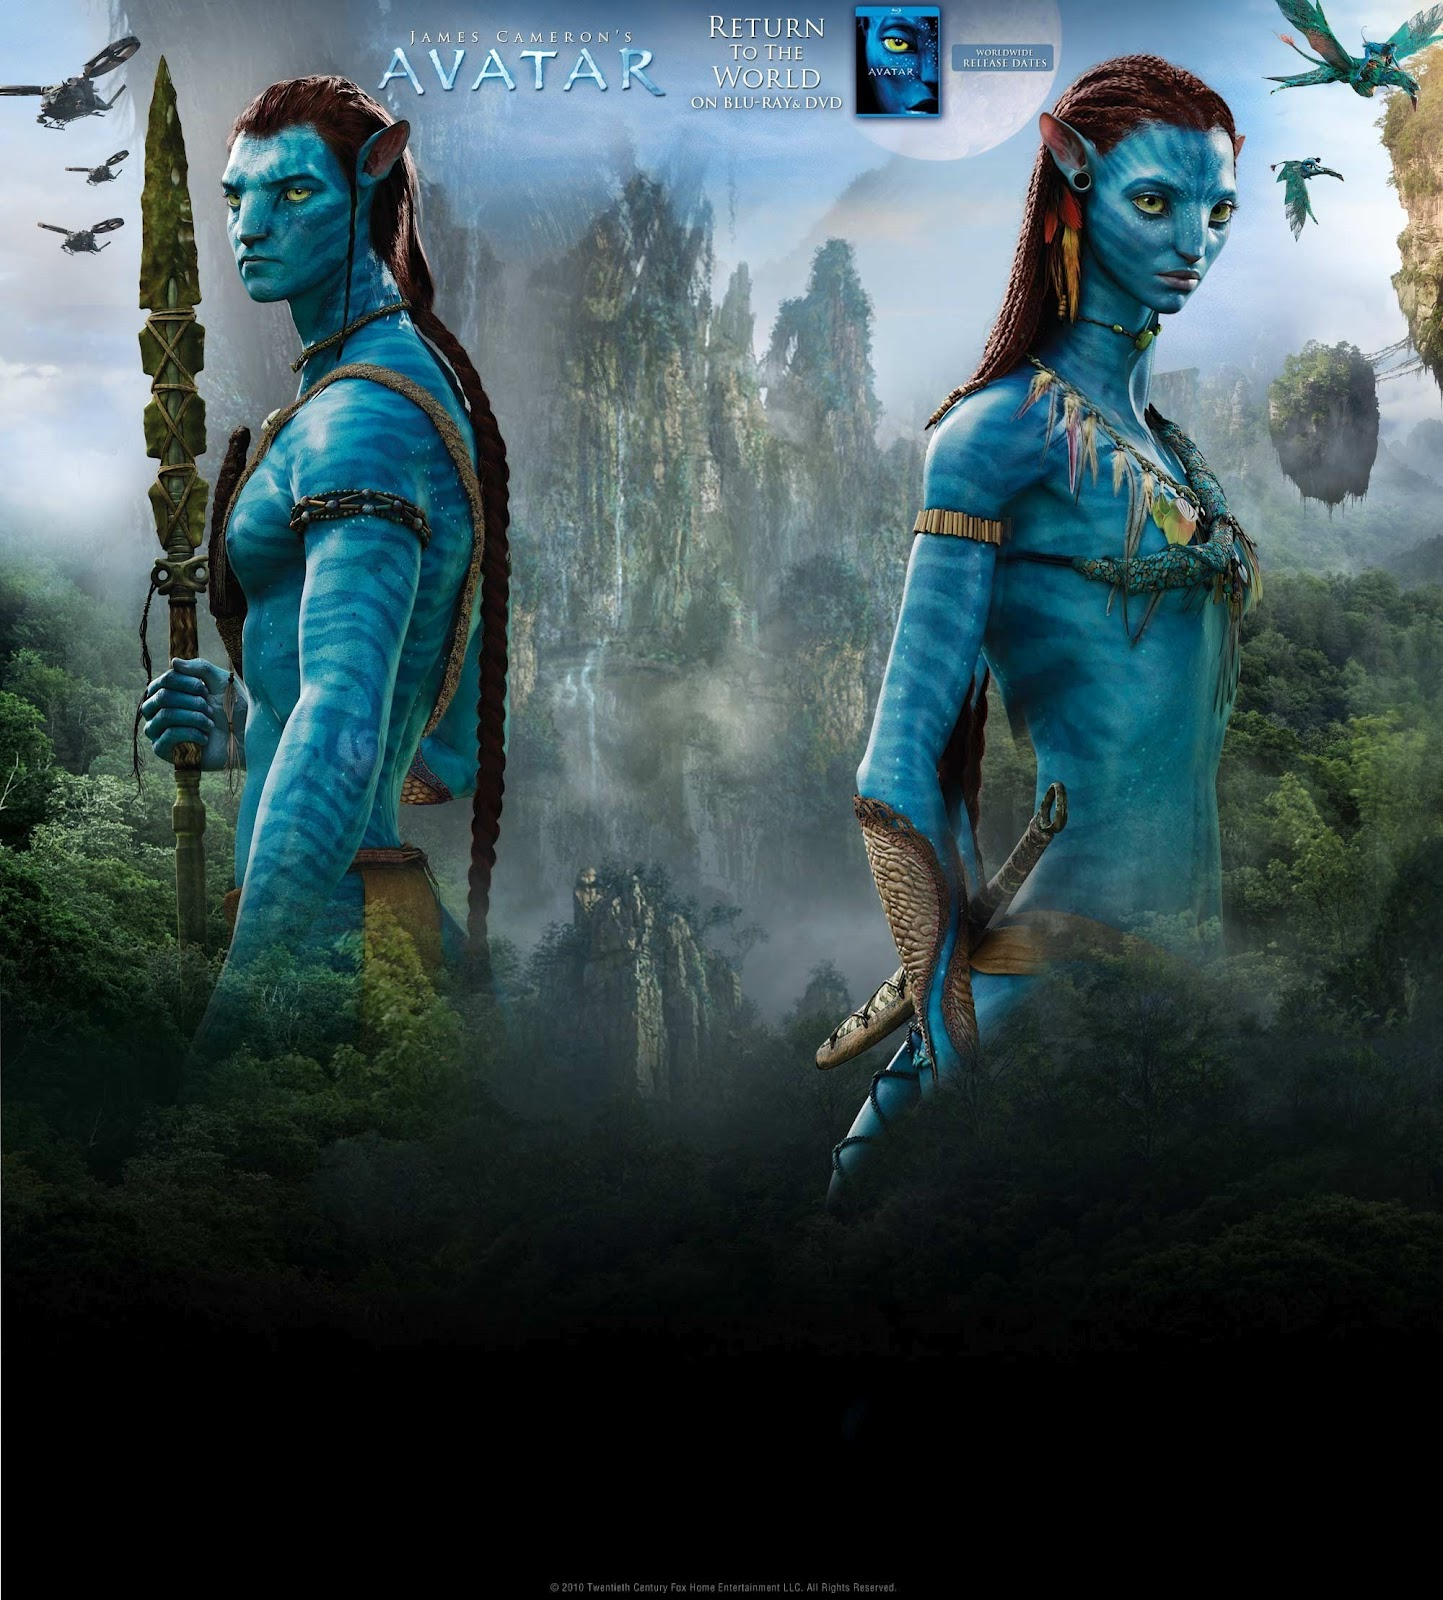 Download All Movie: The Most Popular Film Avatar